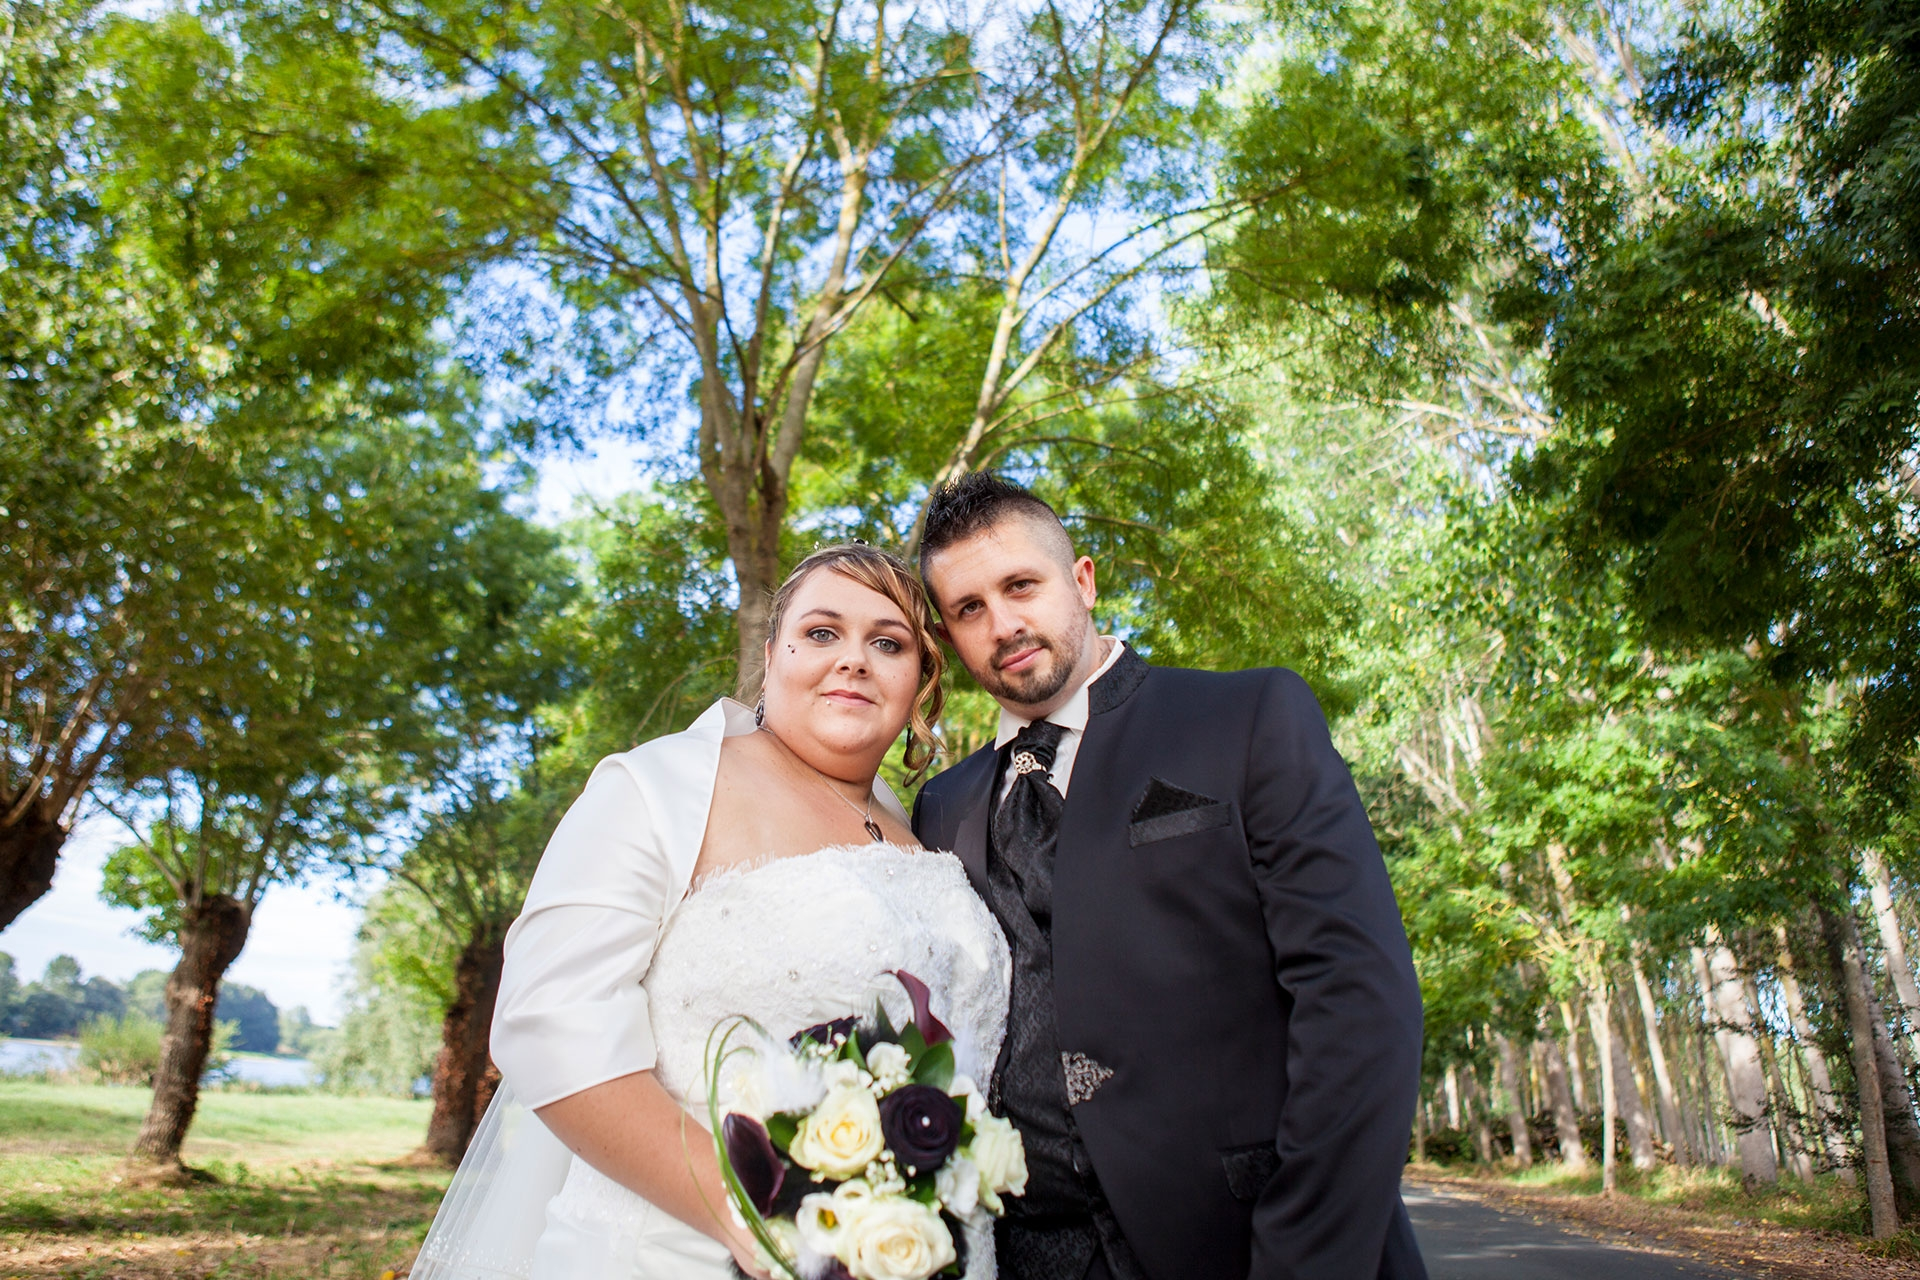 particuliers-evenements-mariages-oui-elodie&wilson-22